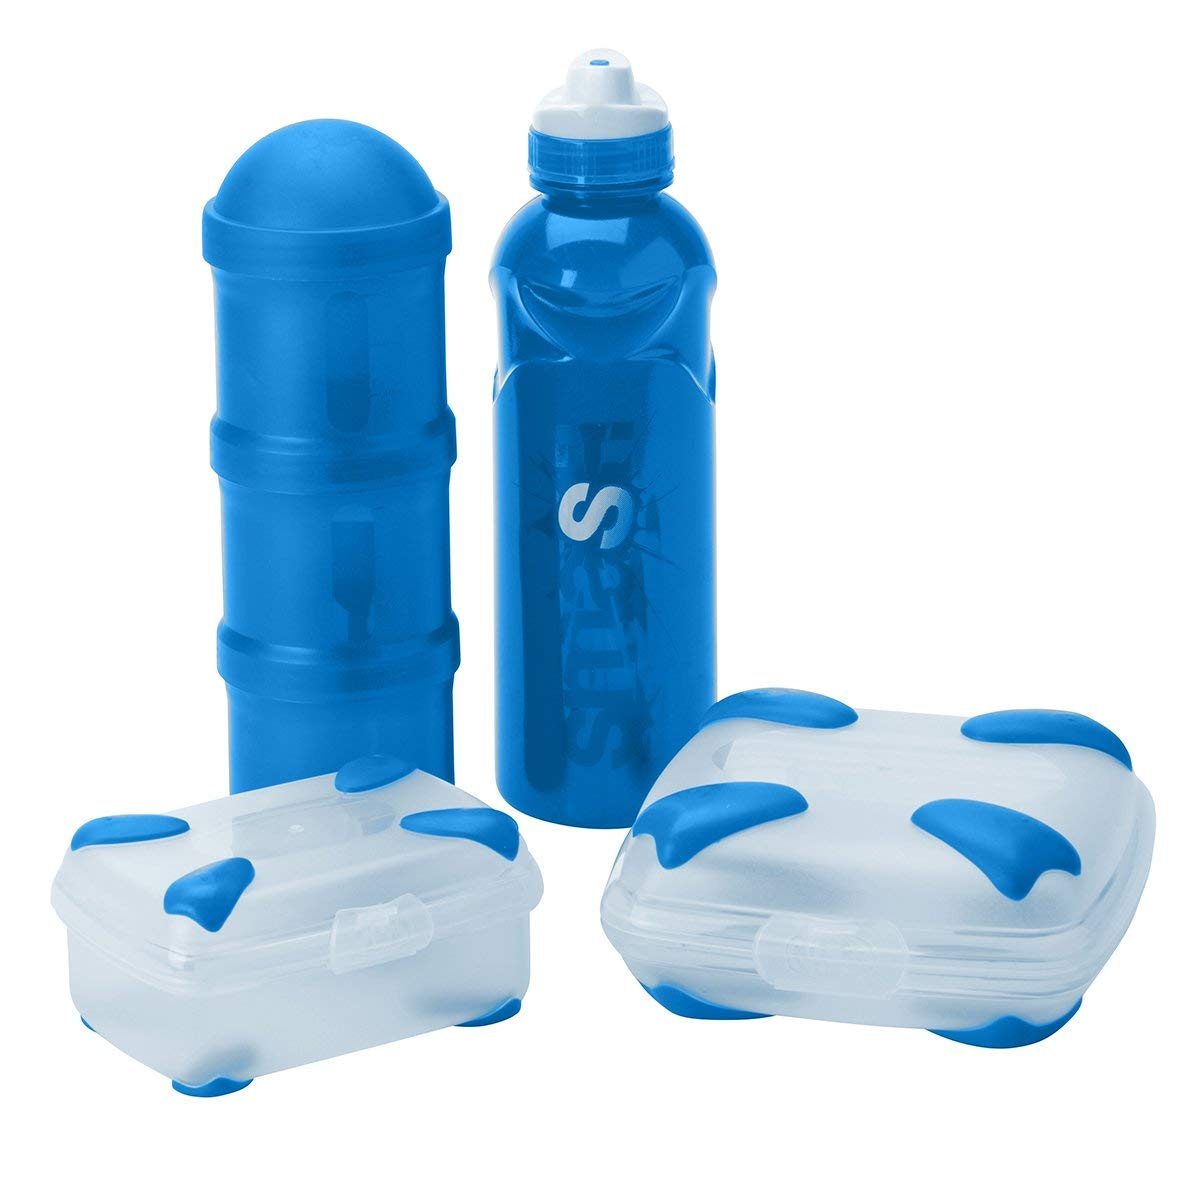 Nude Food Movers By Smash Rubbish Free Lunch Kit With Sandwich Box Snack Box Stealth Water Bottle Triple Snack Tube Blue By Nude Food Movers By Smash Shop Online When one drinks a glass of water between alcoholics beverages. nude food movers by smash rubbish free